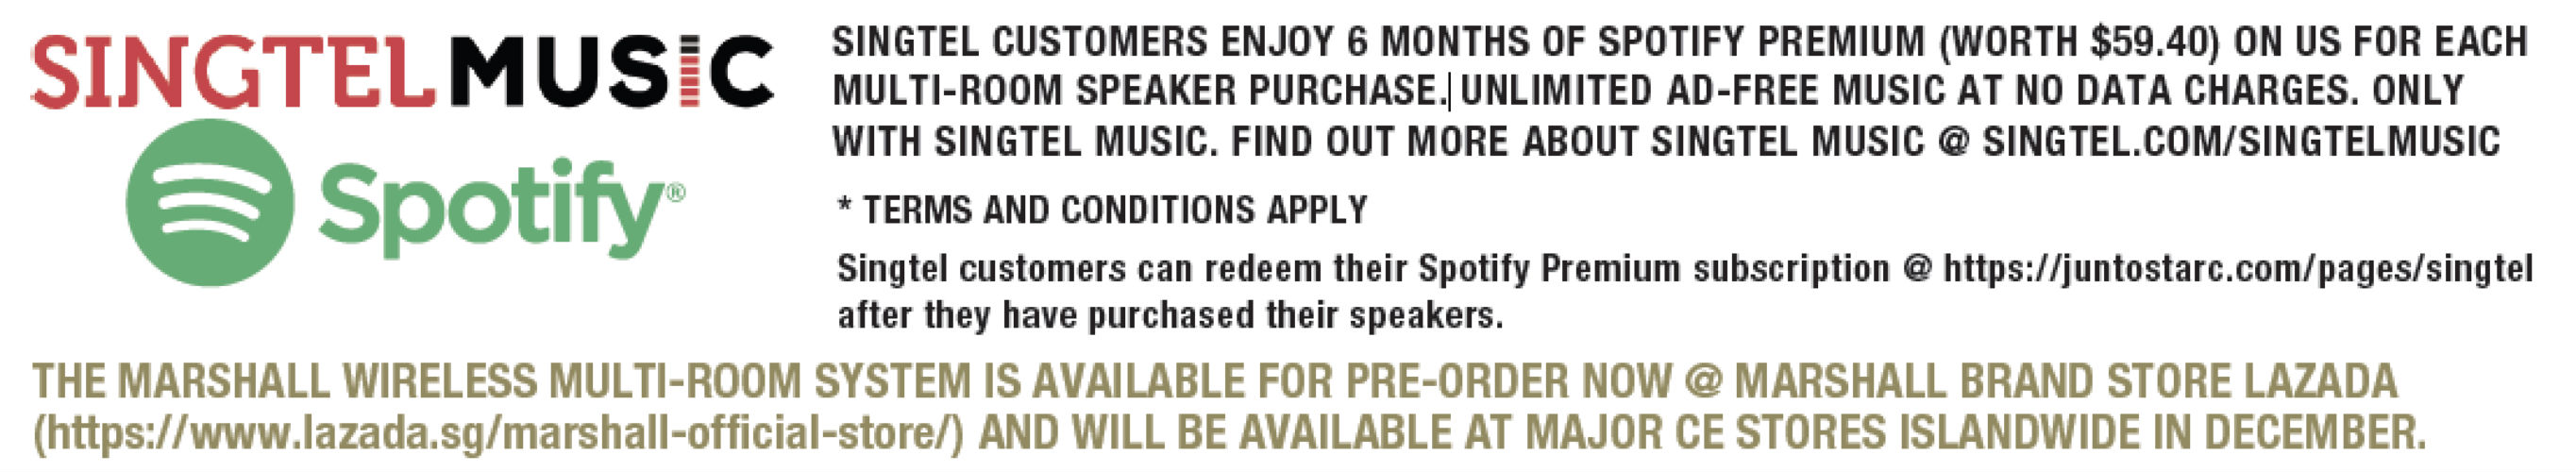 Details on Singtel Music and Spotify promotion